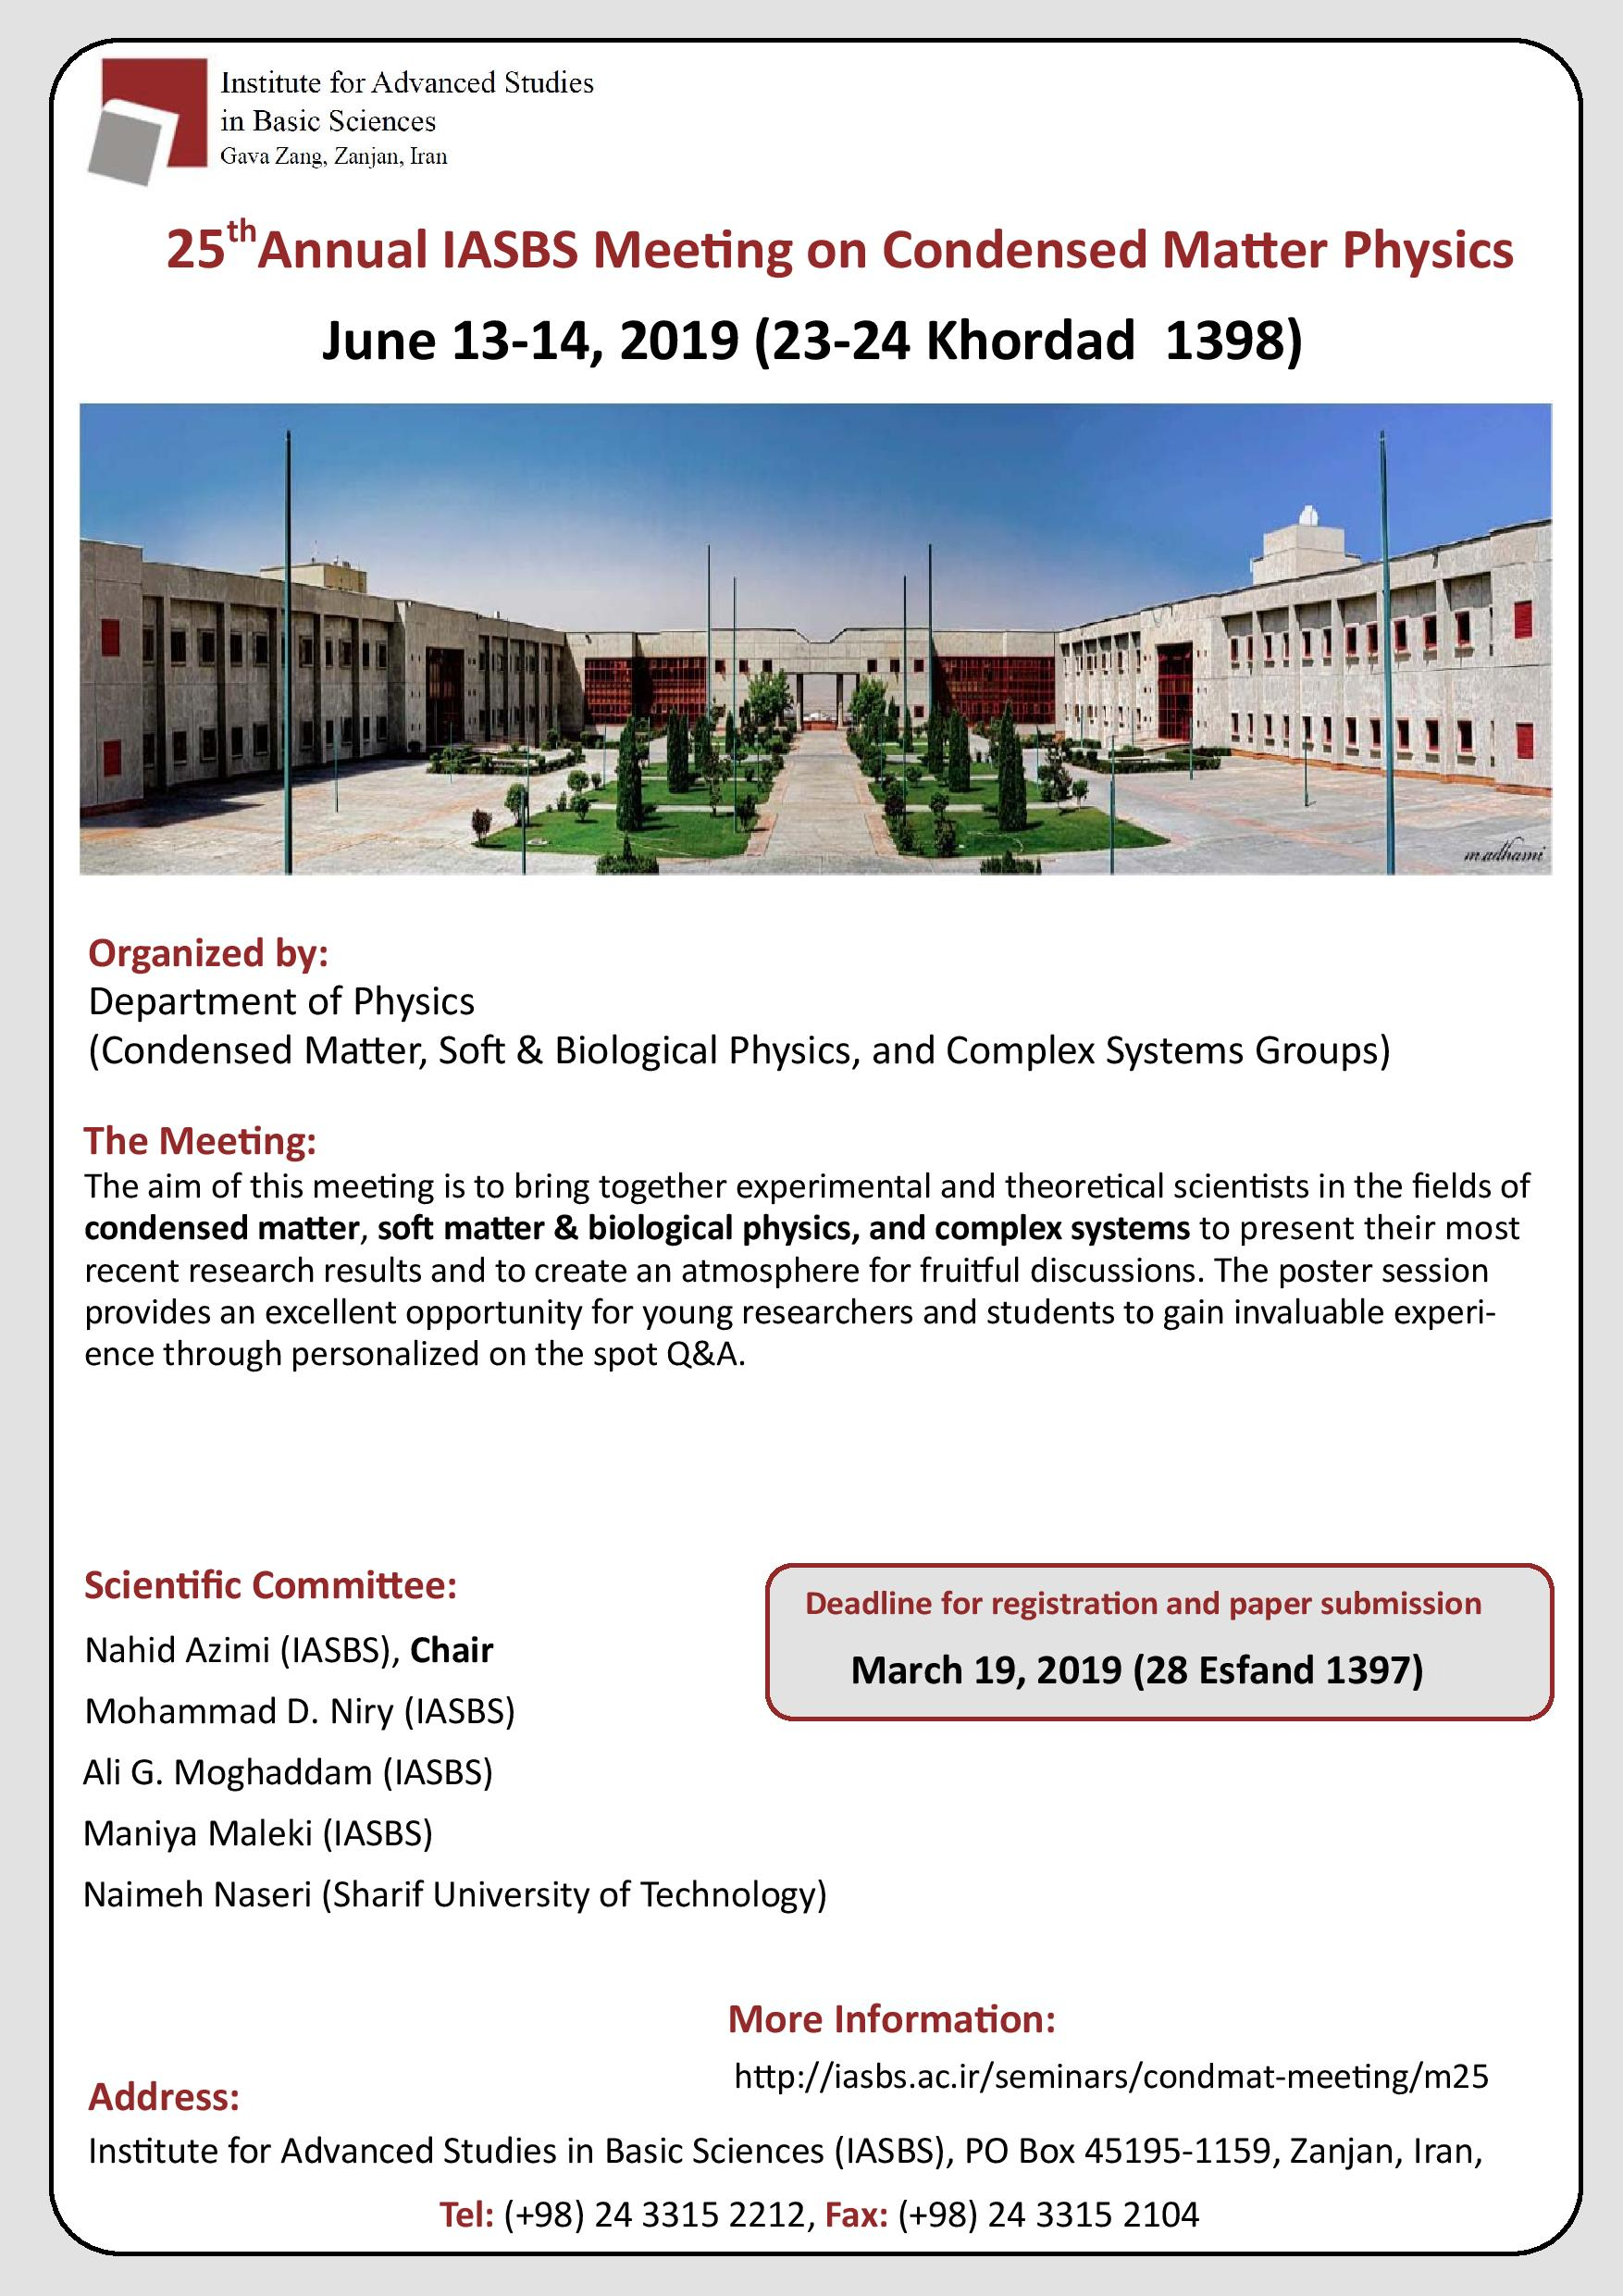 25th Annual IASBS Meeting on Condensed Matter Physics